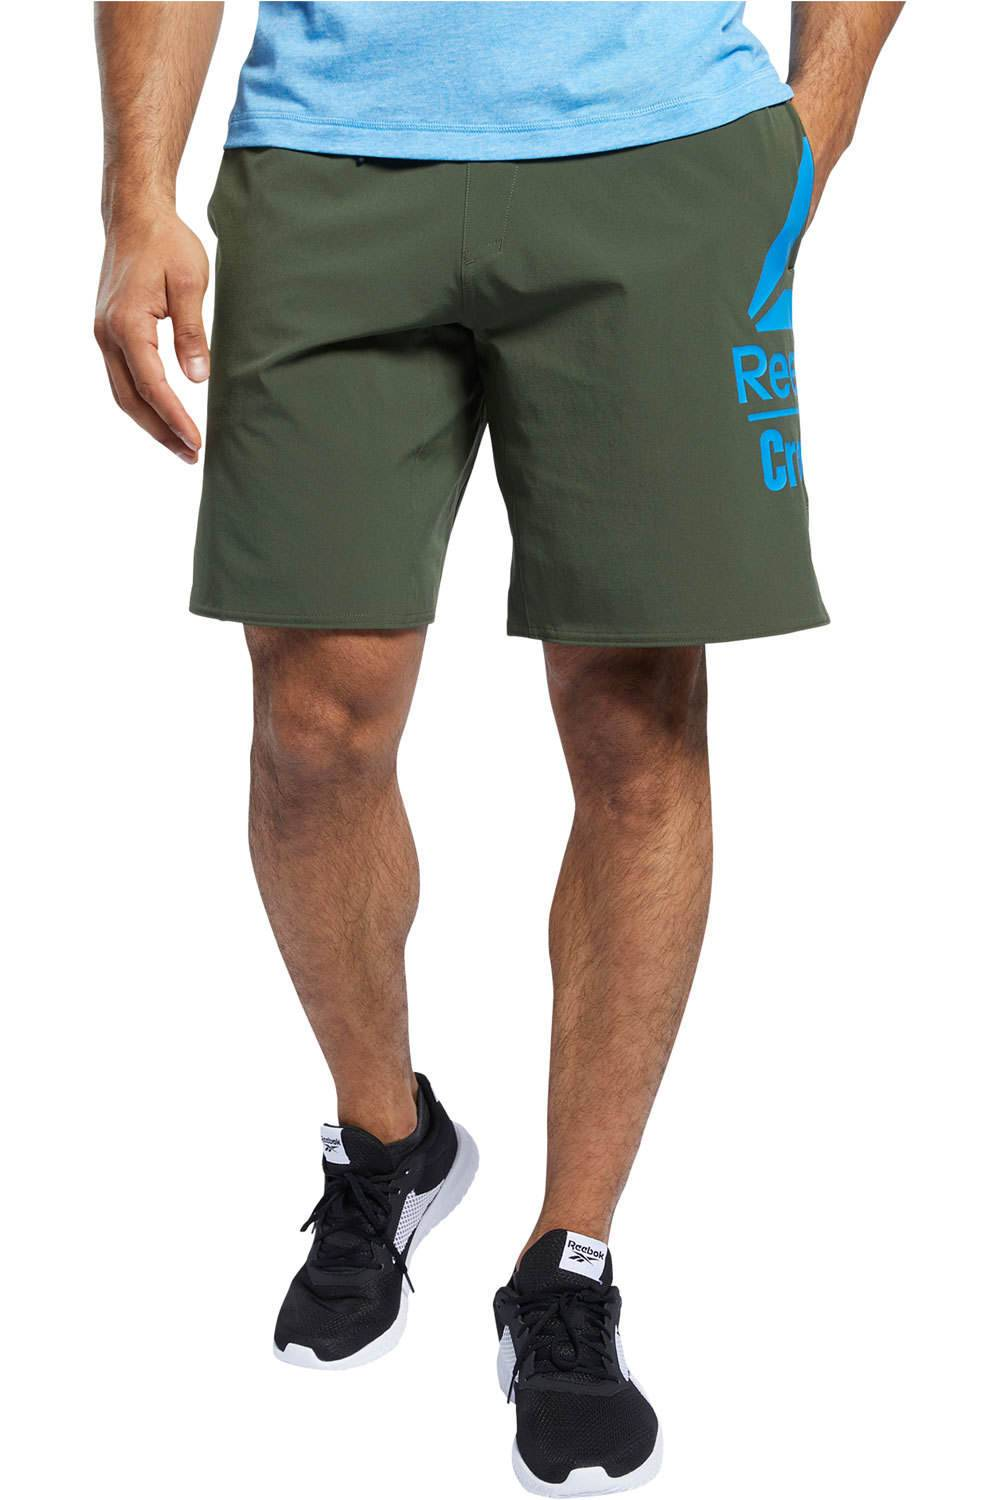 Reebok Botellines y complementos fitness rc epic base short lg br